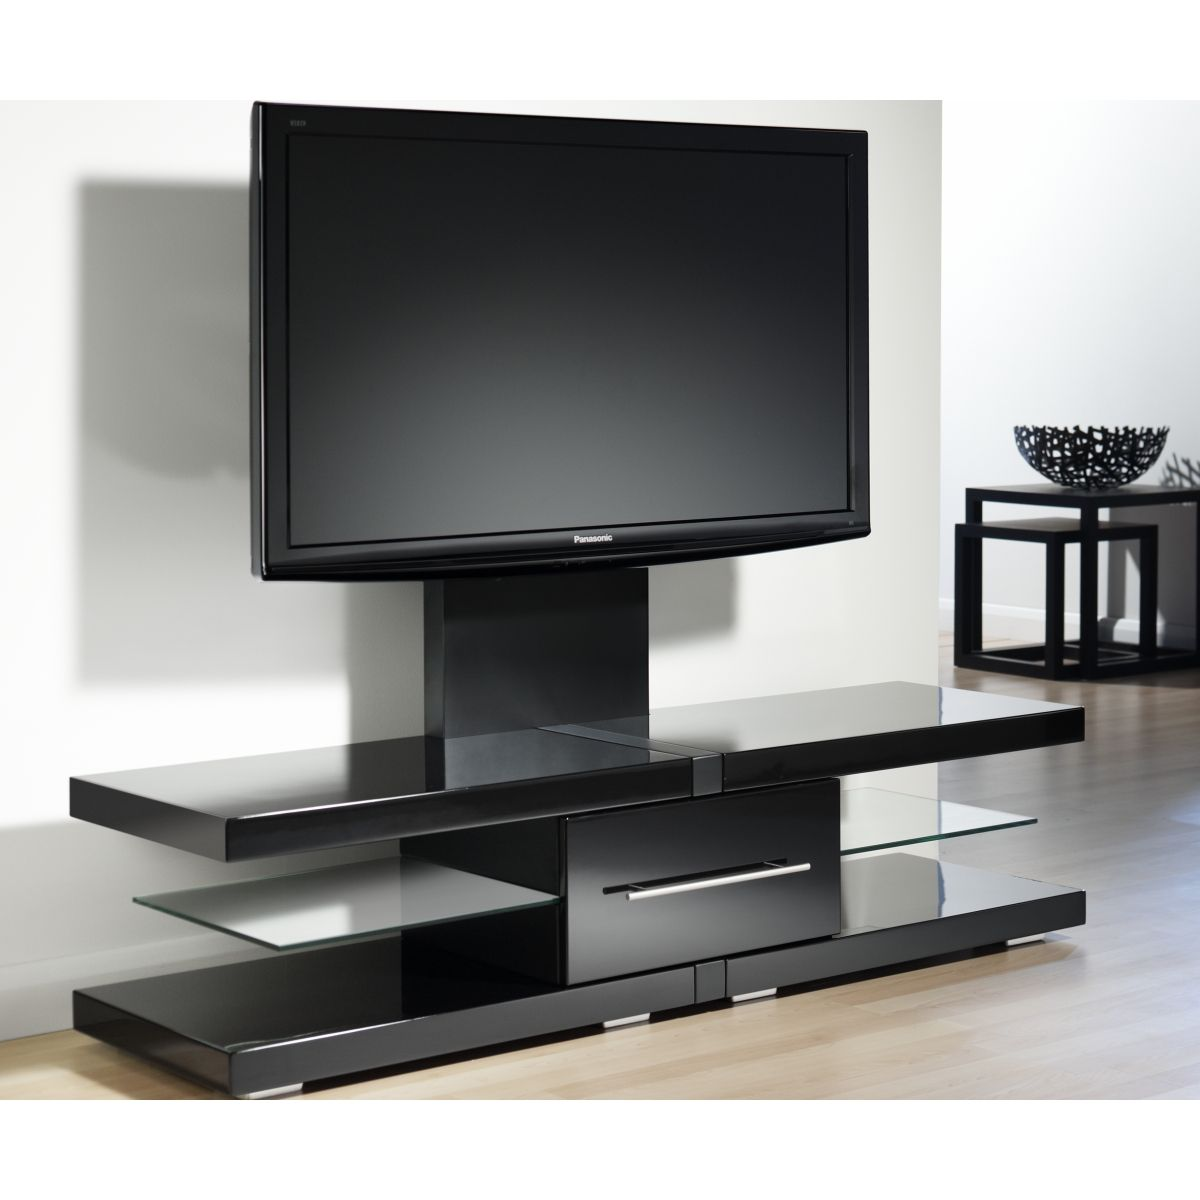 Effigy of cool flat screen tv stands with mount furniture effigy of cool flat screen tv stands with mount sciox Images